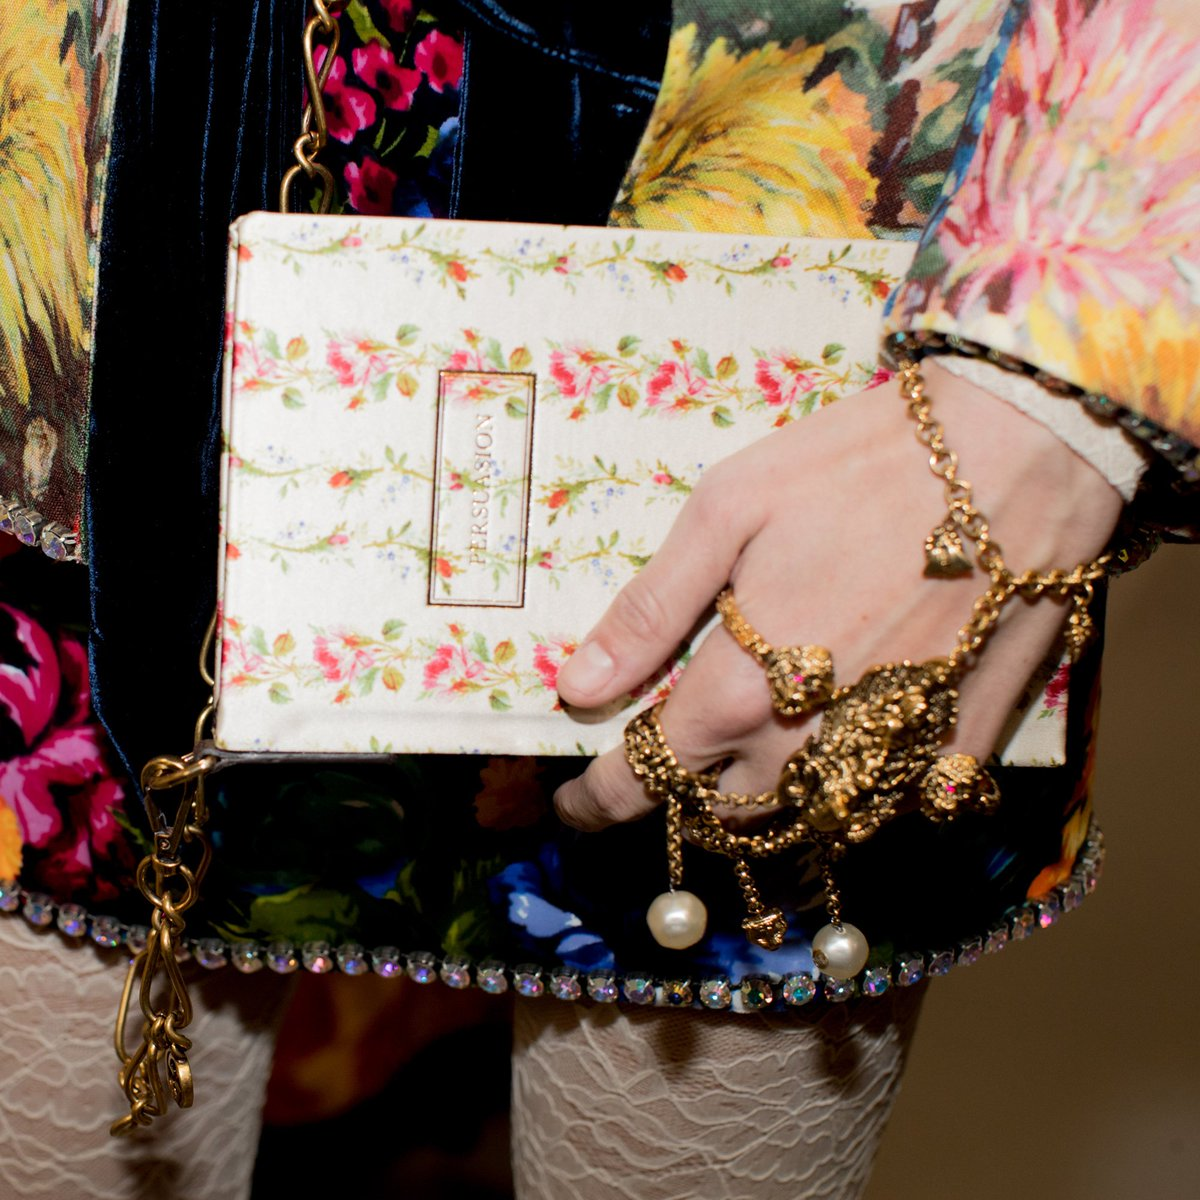 The 25 Best Blog on fashion accessories